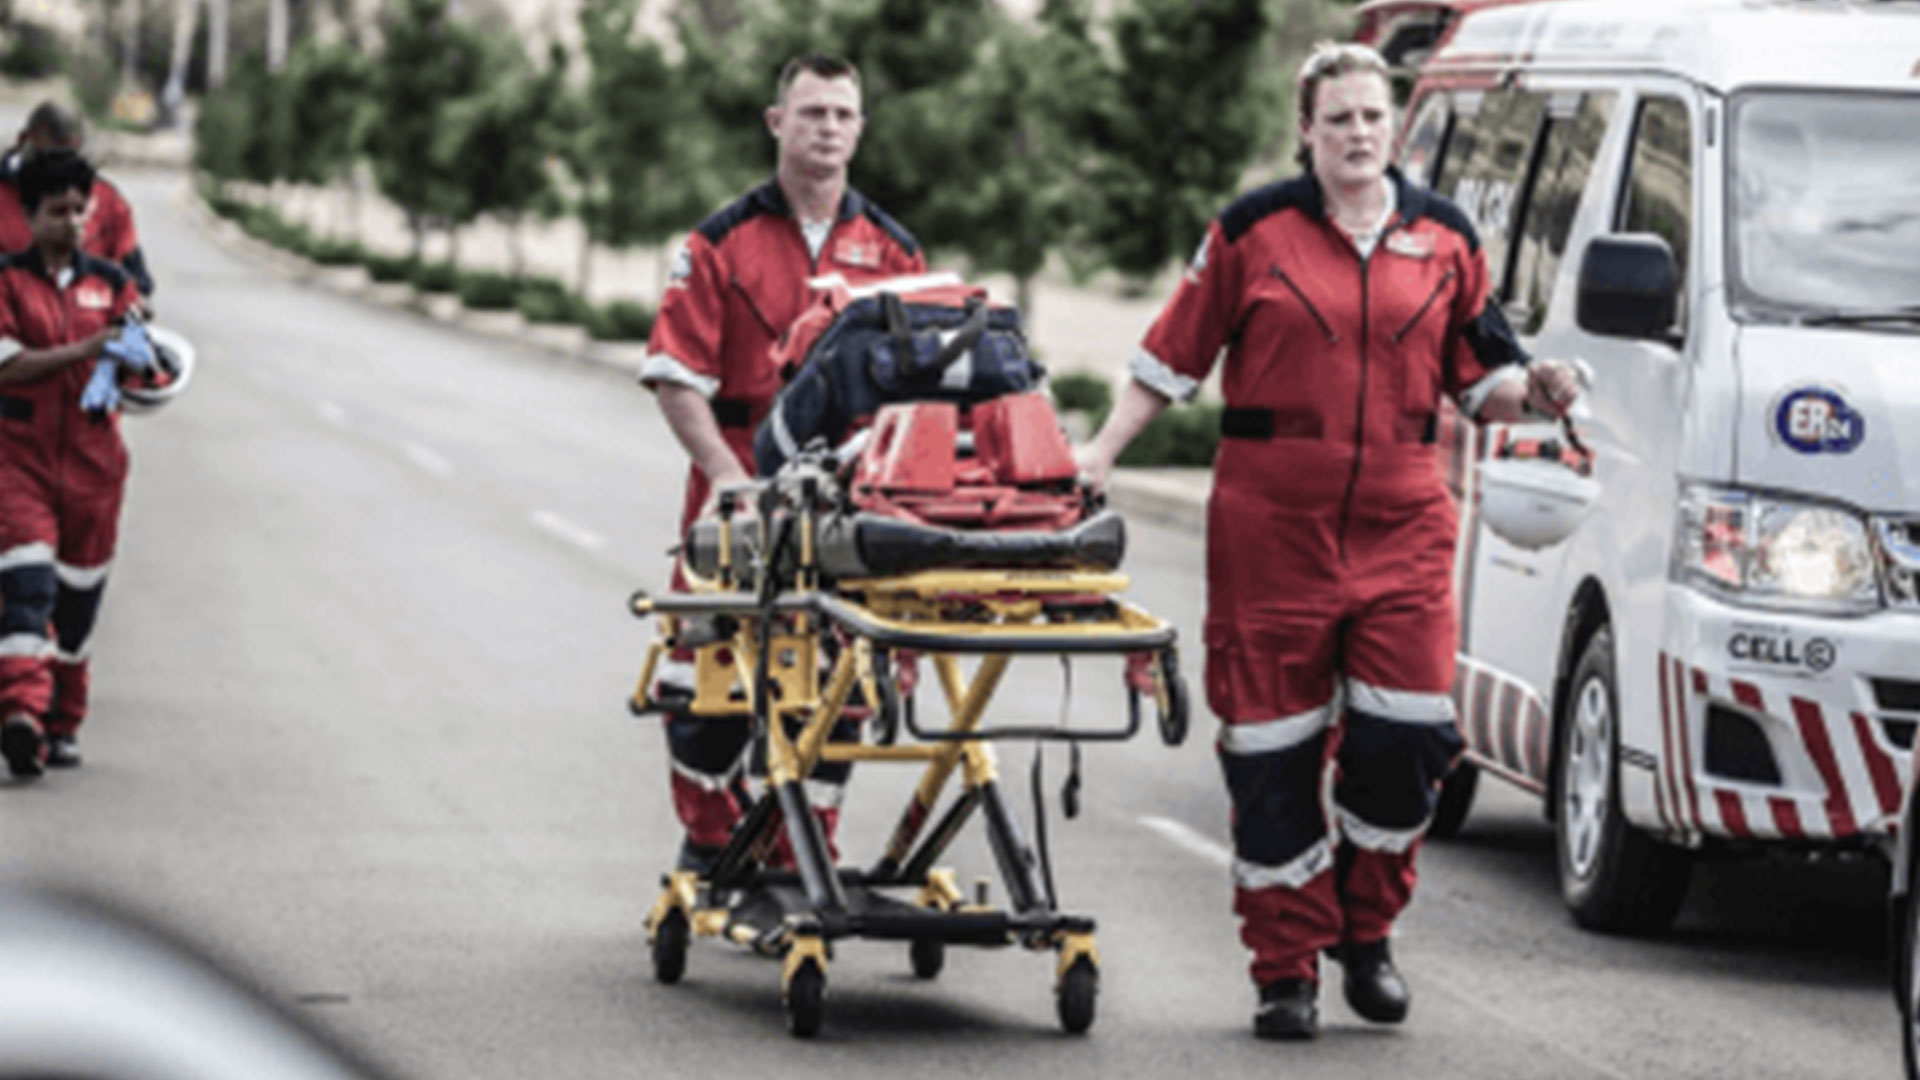 CENTURION - Young man seriously injured in fall from wall